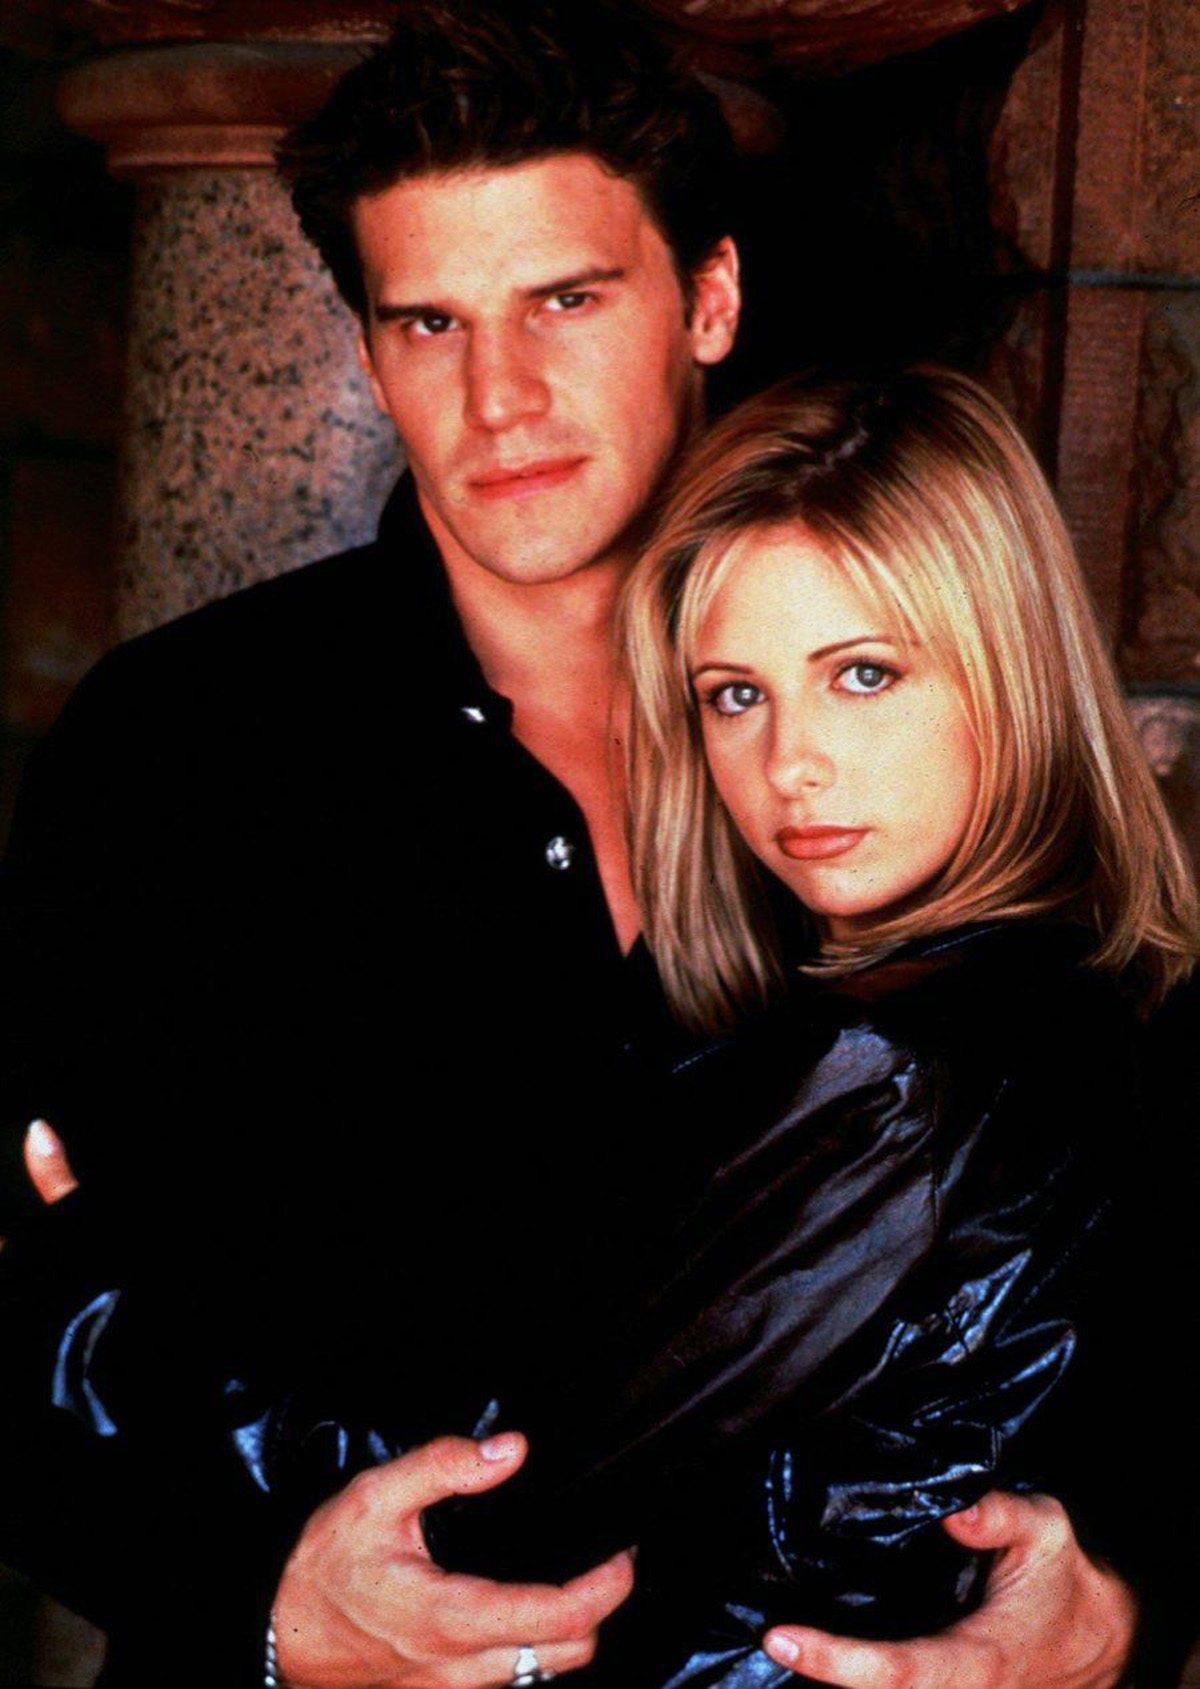 Buffy 2013 Gallery 10 Angel David Boreanaz Photos | DVDbash